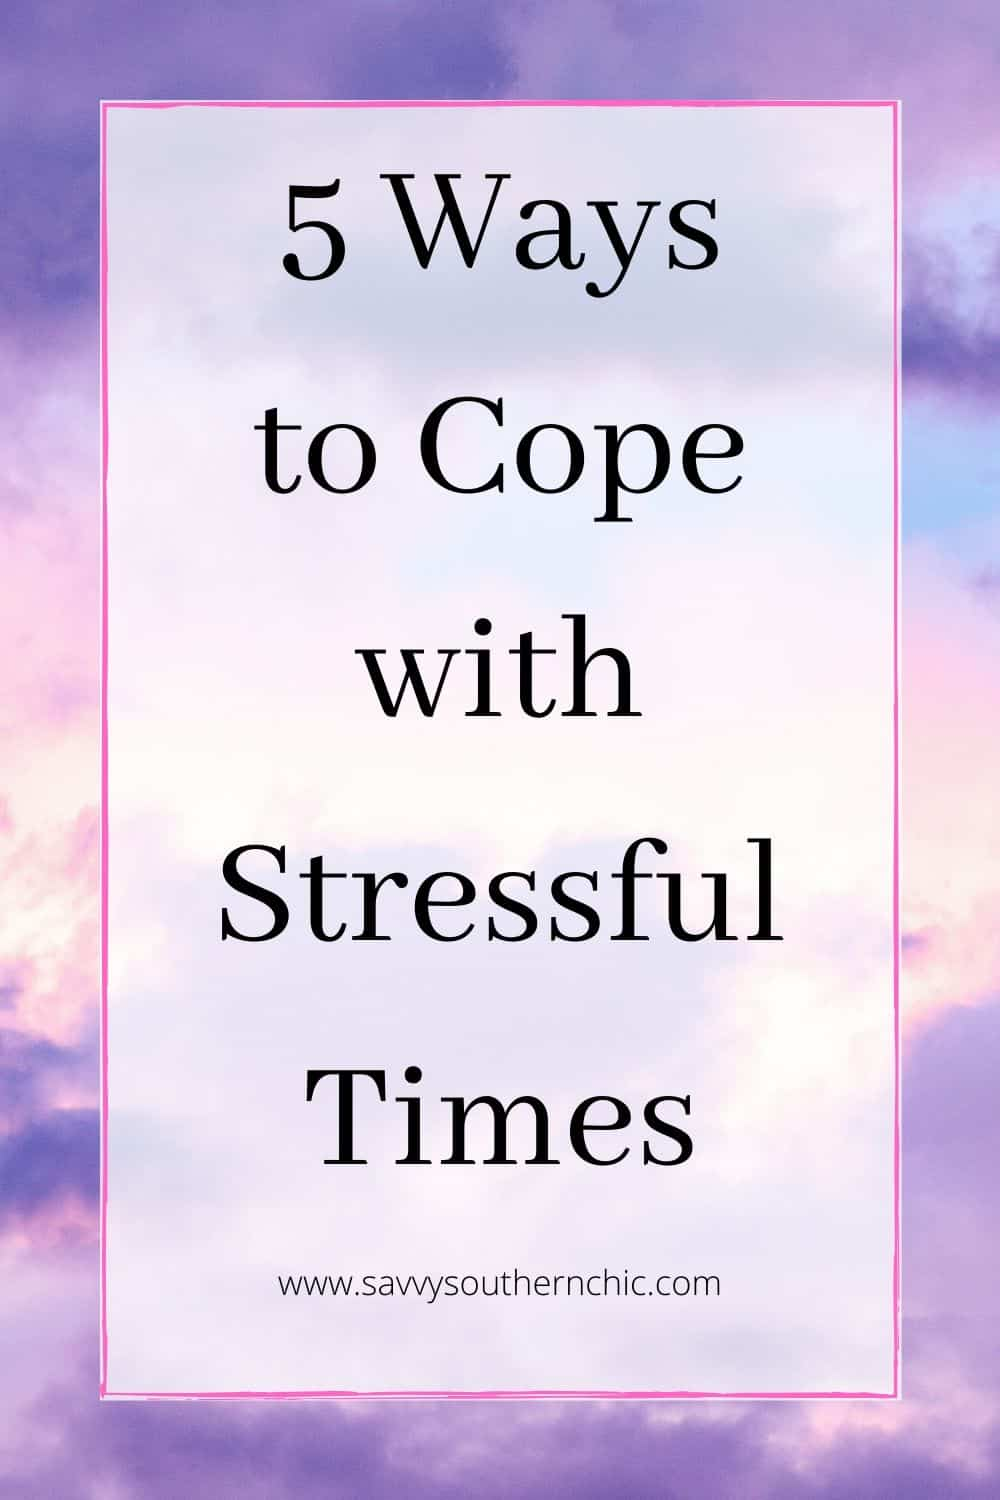 5 ways to cope with stressful times